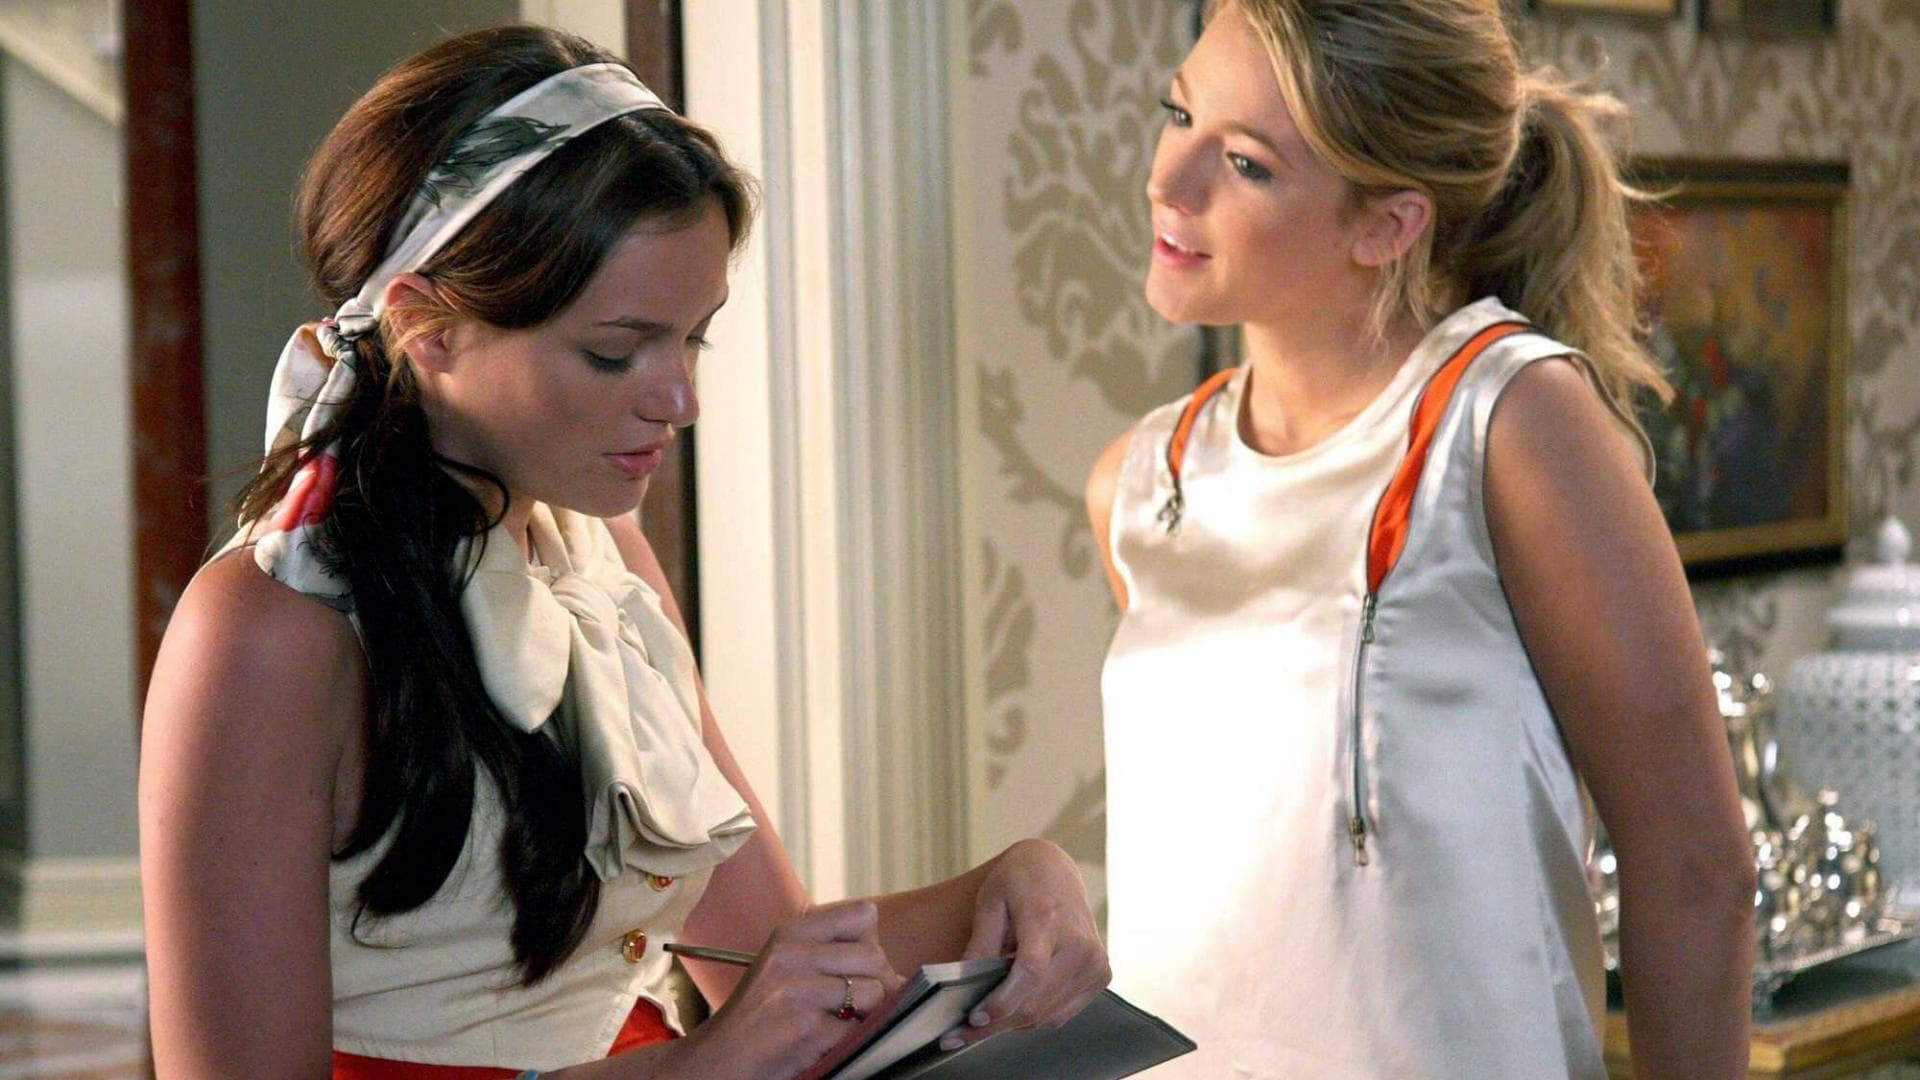 Fashion Inspiration, modeserien, Gossip Girl